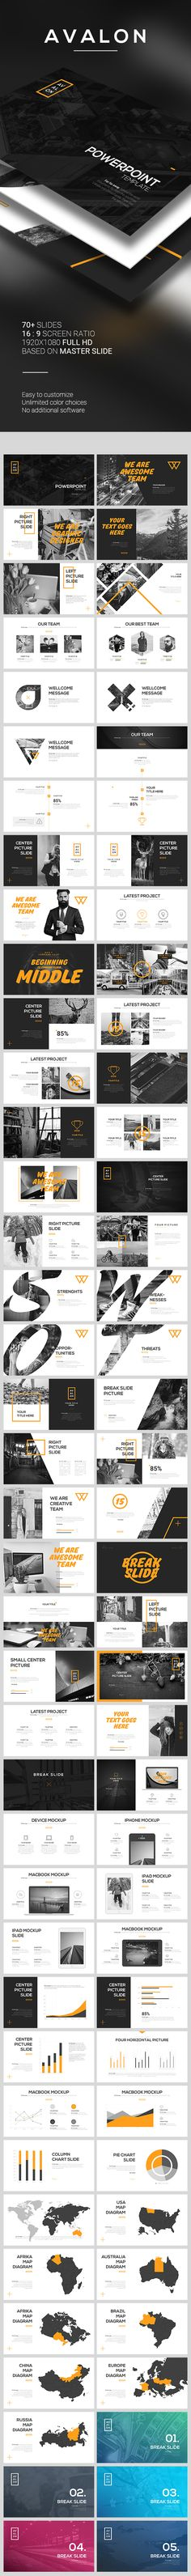 AVALON PowerPoint Template. Download here: http://graphicriver.net/item/avalon-powerpoint-template/16015856?ref=ksioks